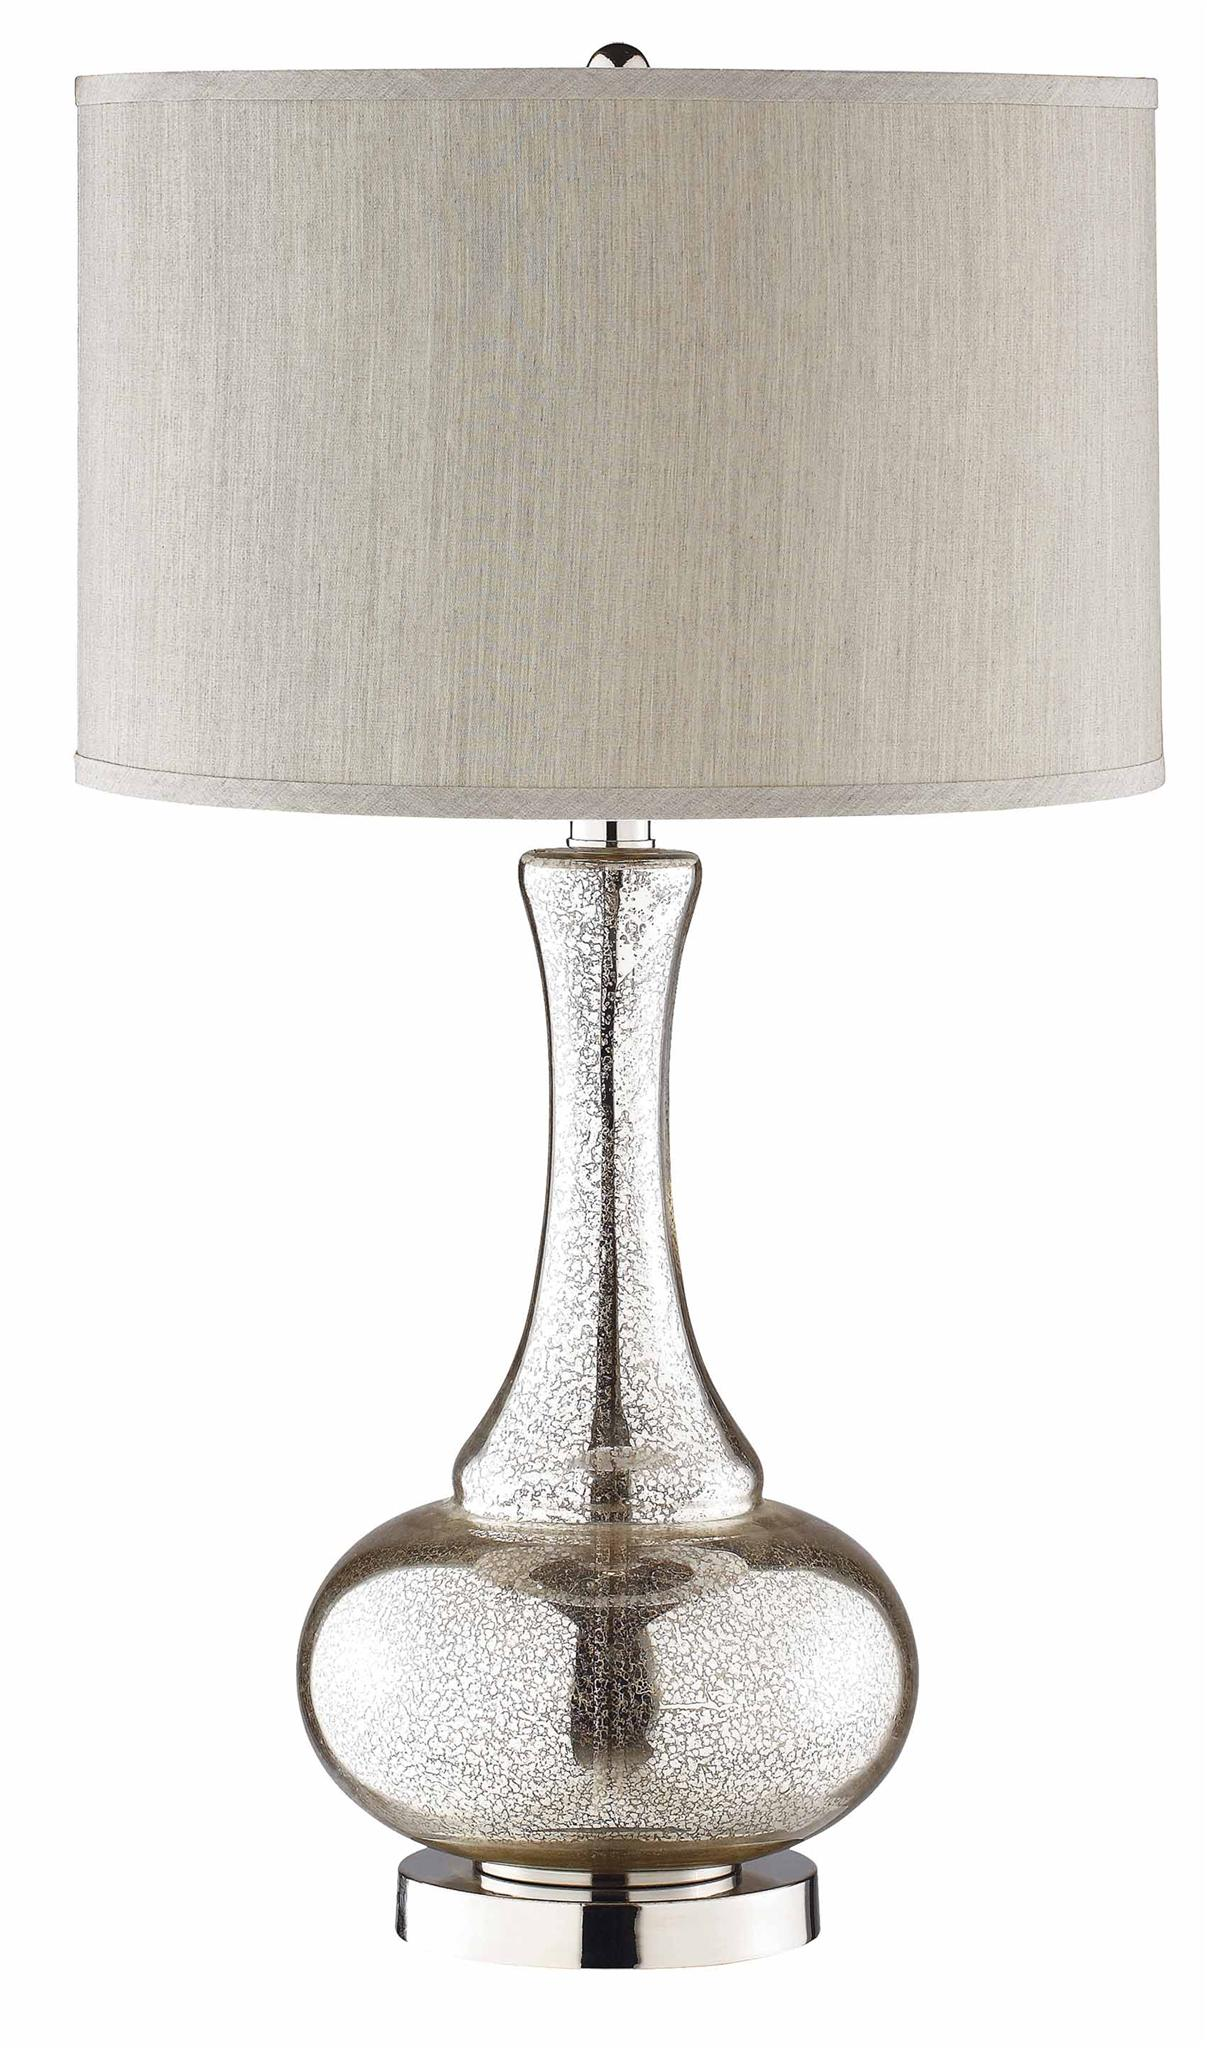 stein world - linore table lamp